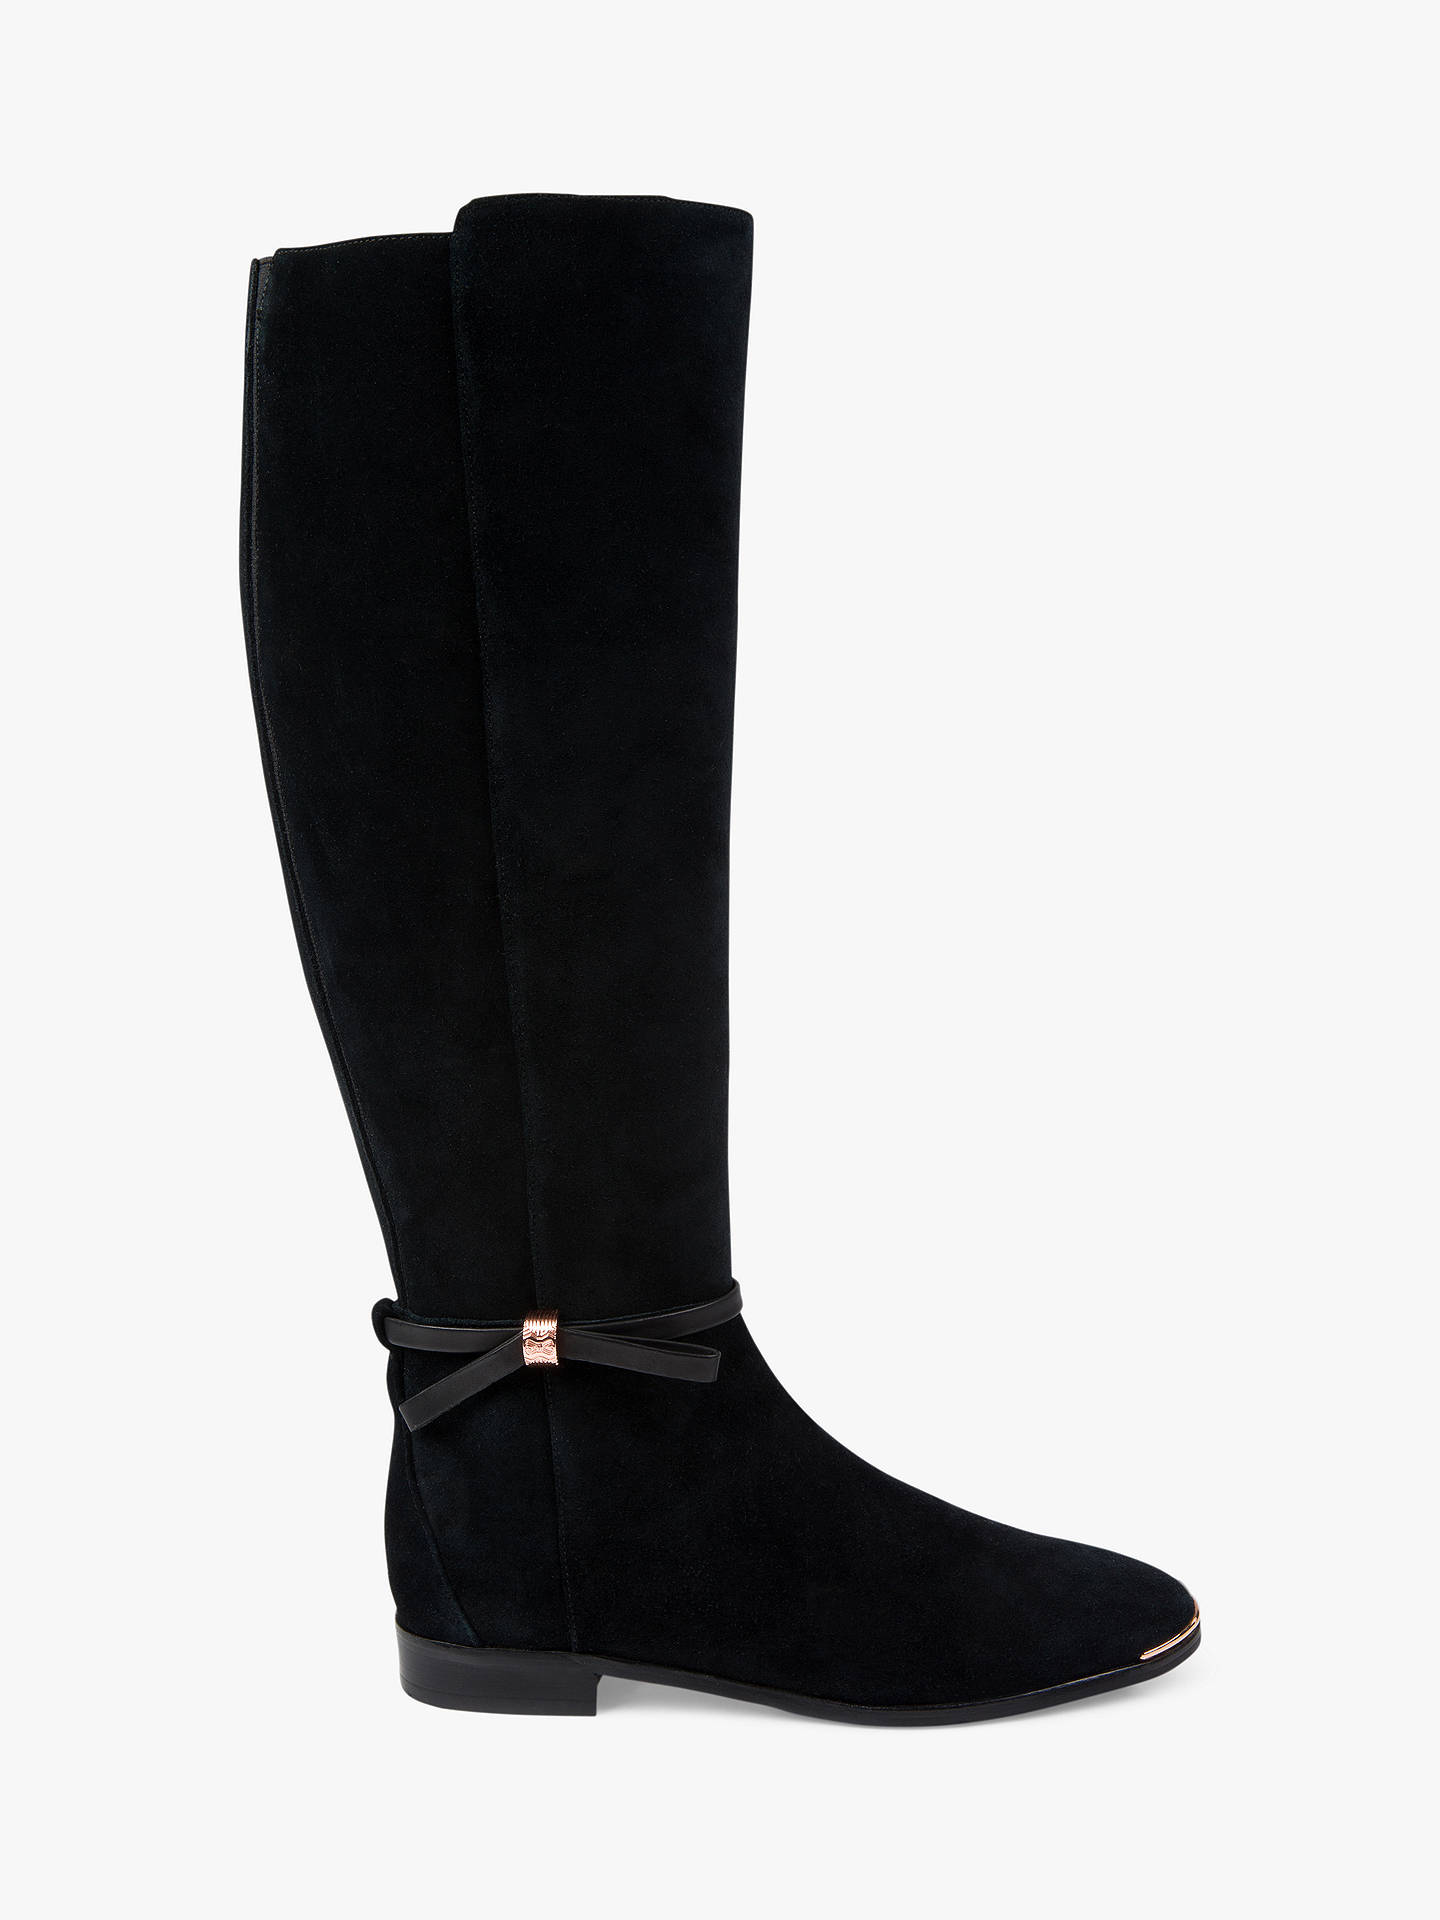 23f18463aa6 Ted Baker Lykla Knee High Boots at John Lewis   Partners